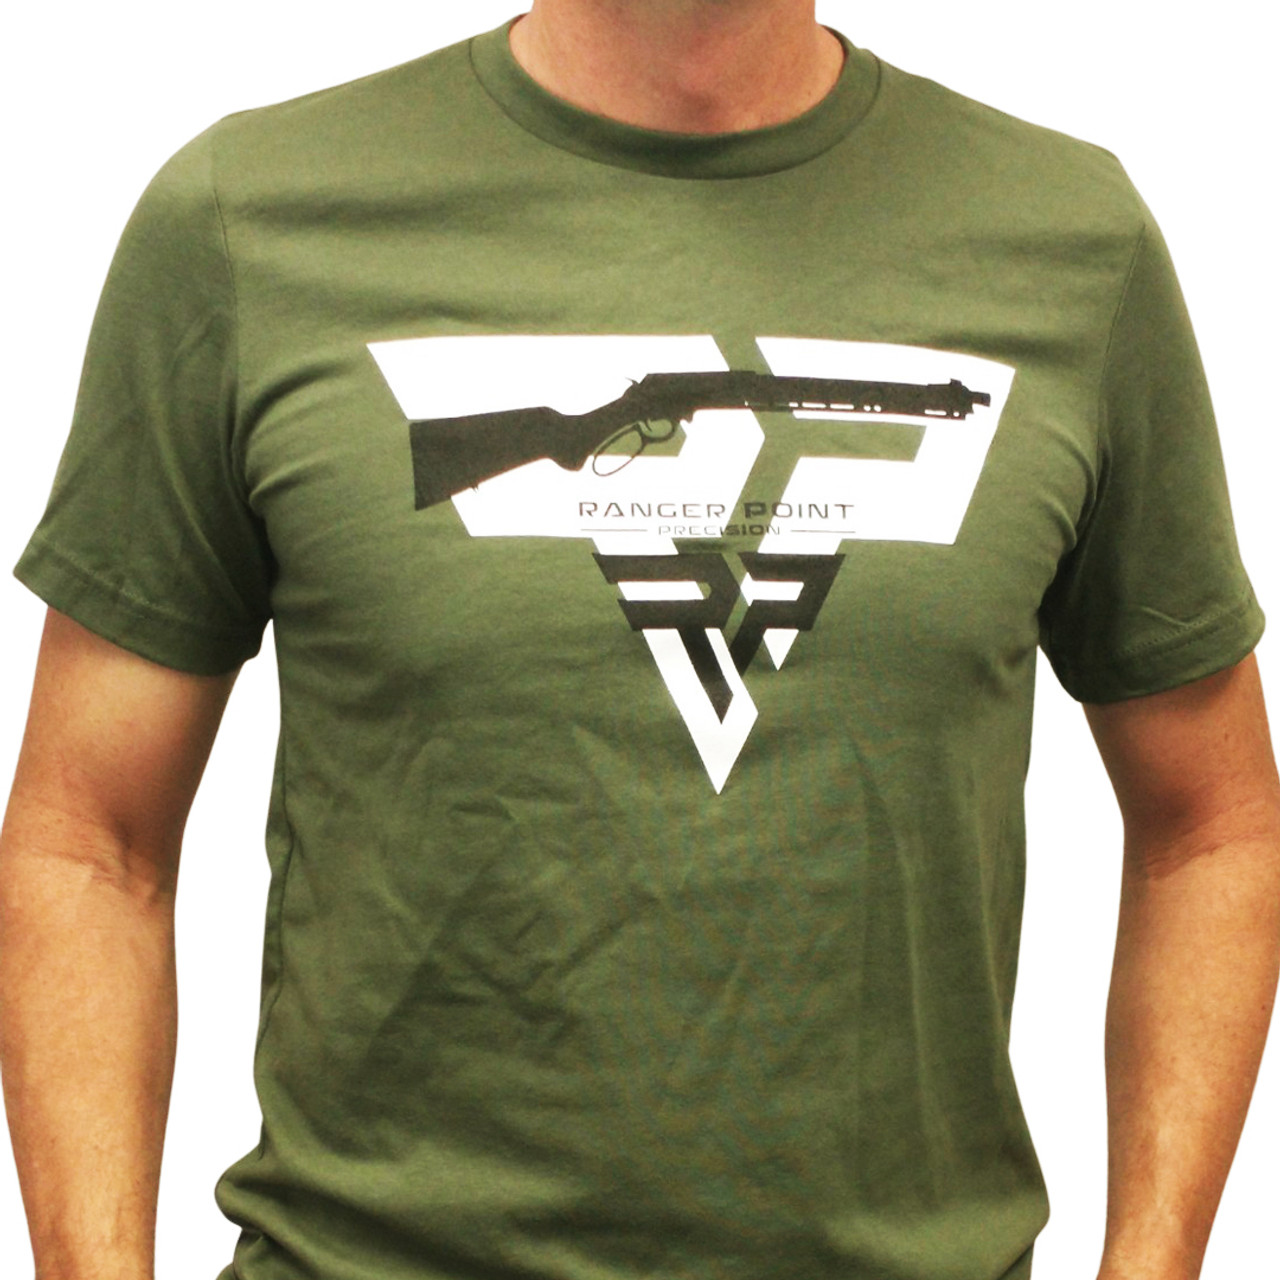 Ranger Point Tactical Lever-Action T-shirt   OD Green, Black, White